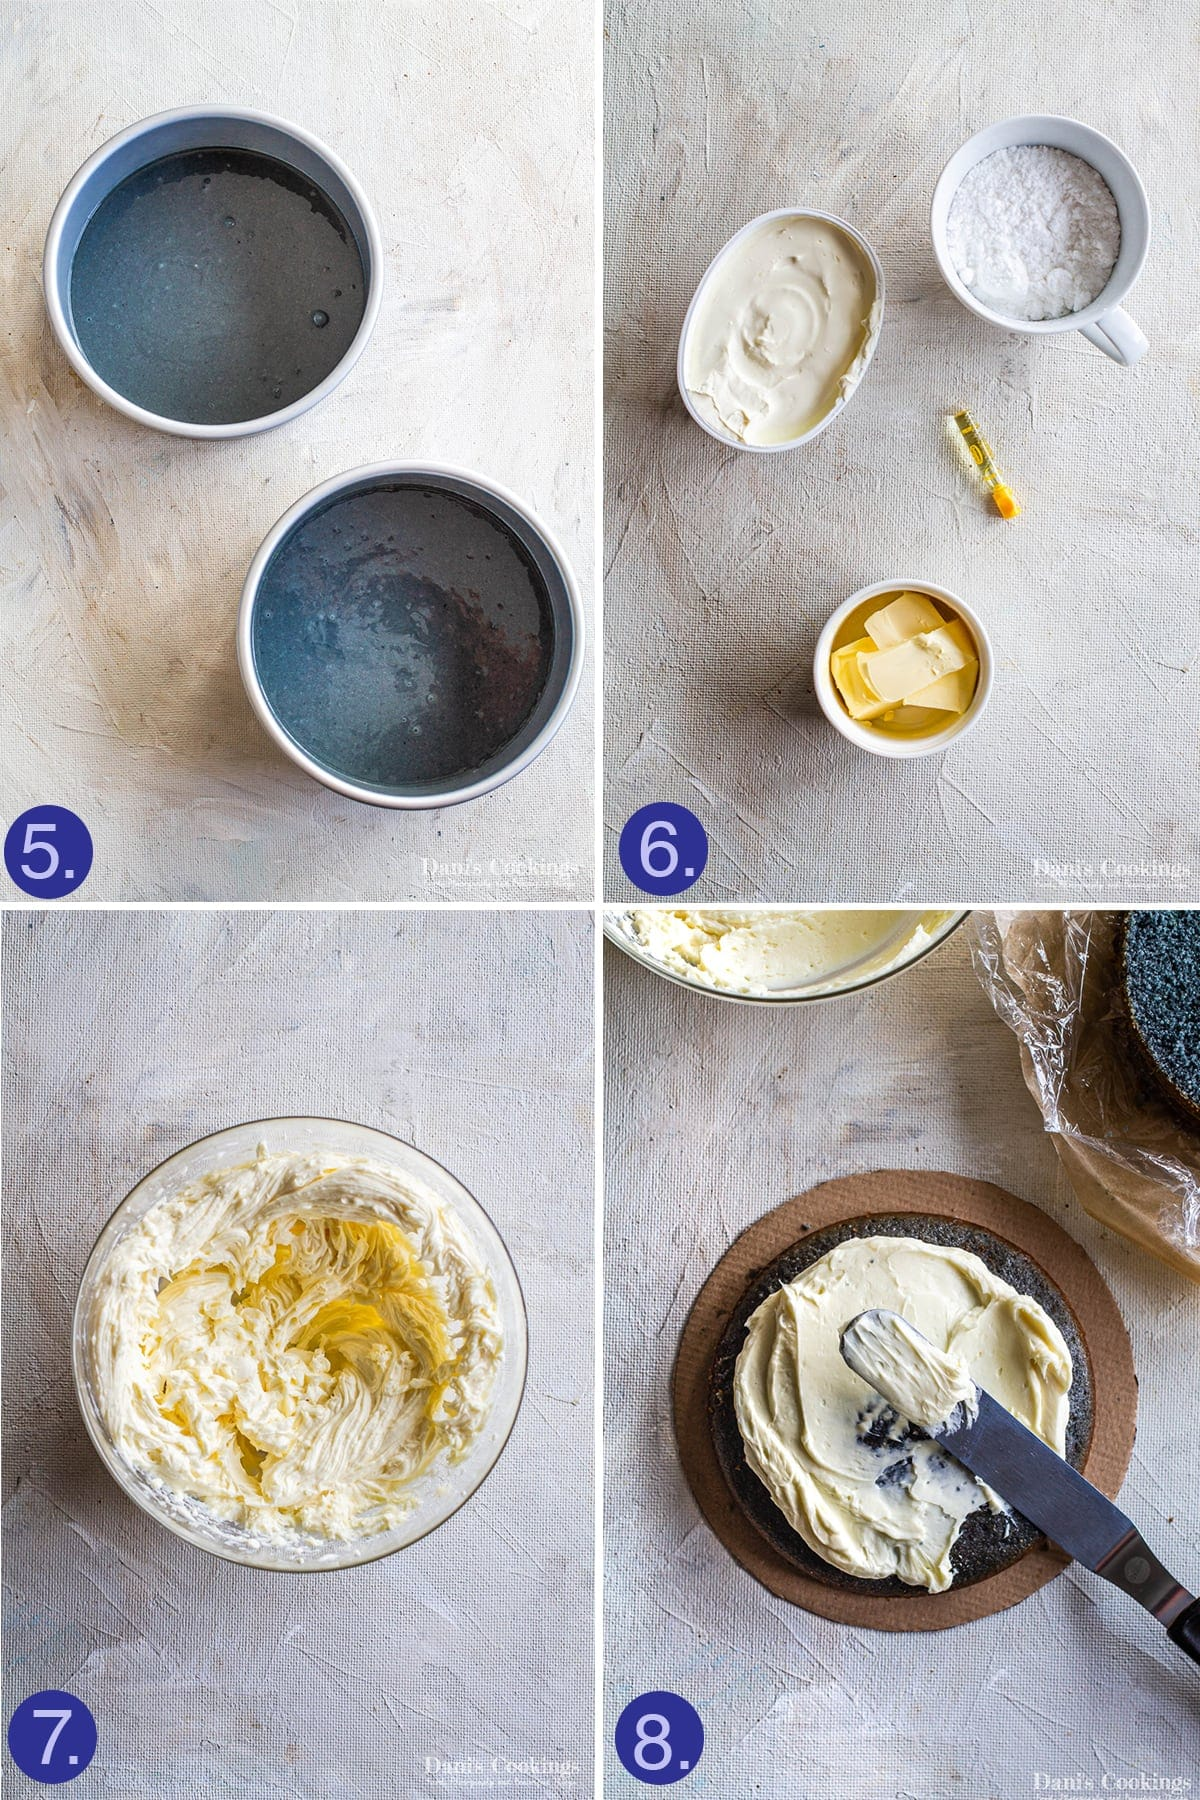 steps to assemble the cake